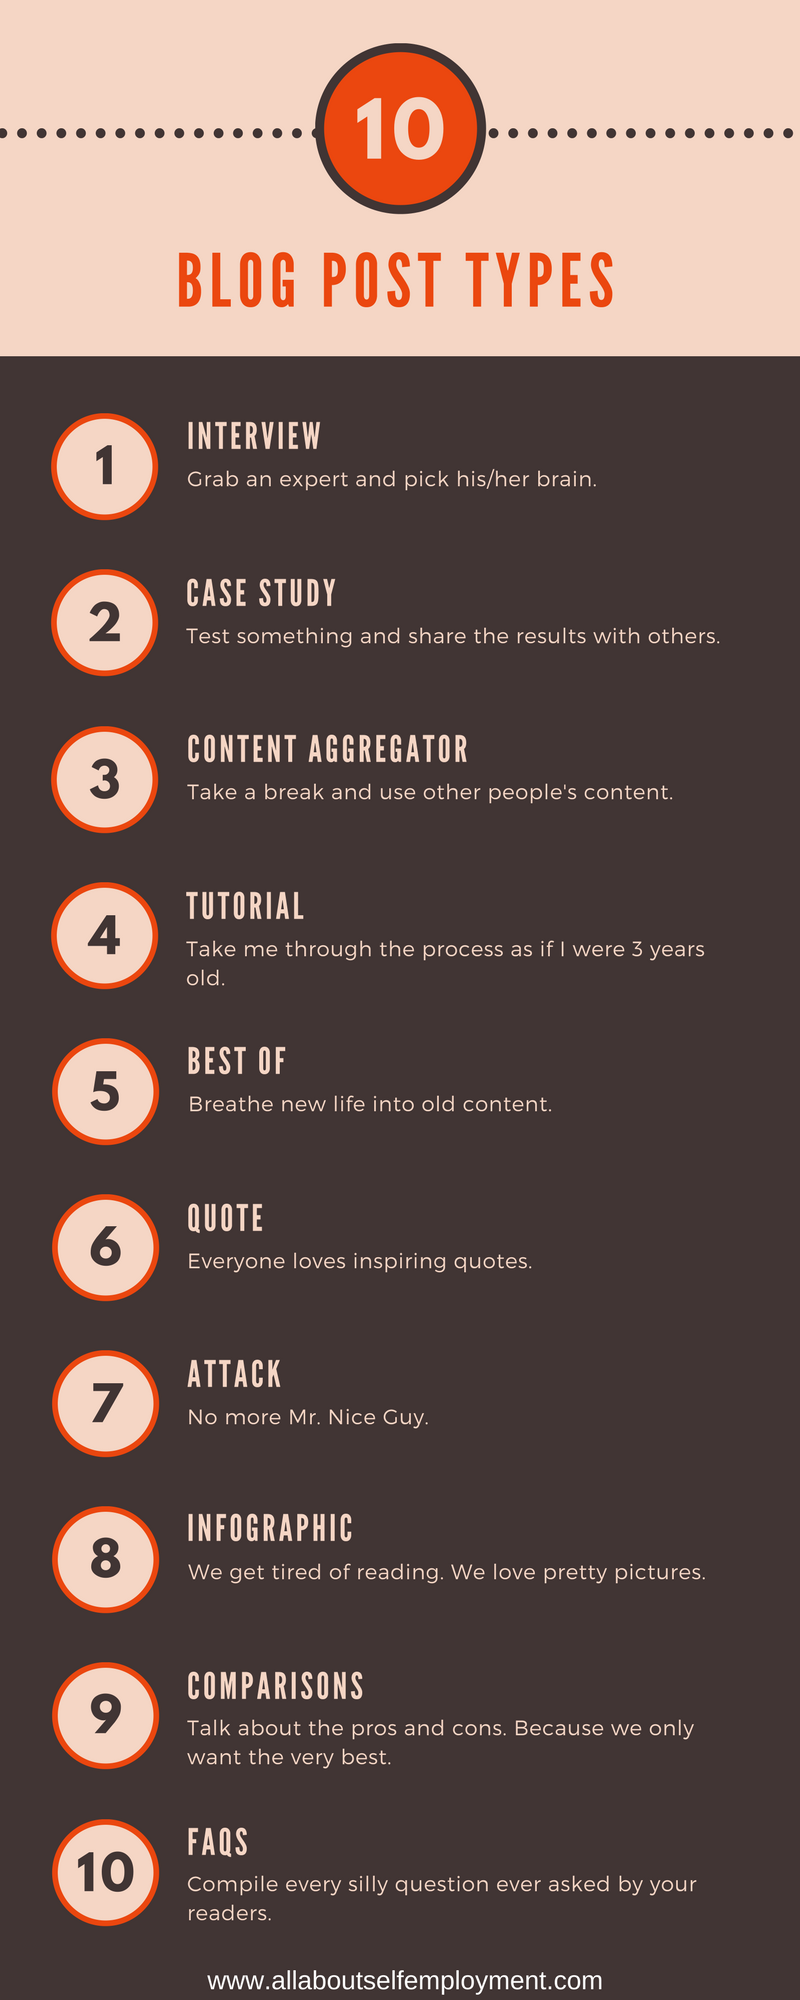 10 Blog Post Types Infographic